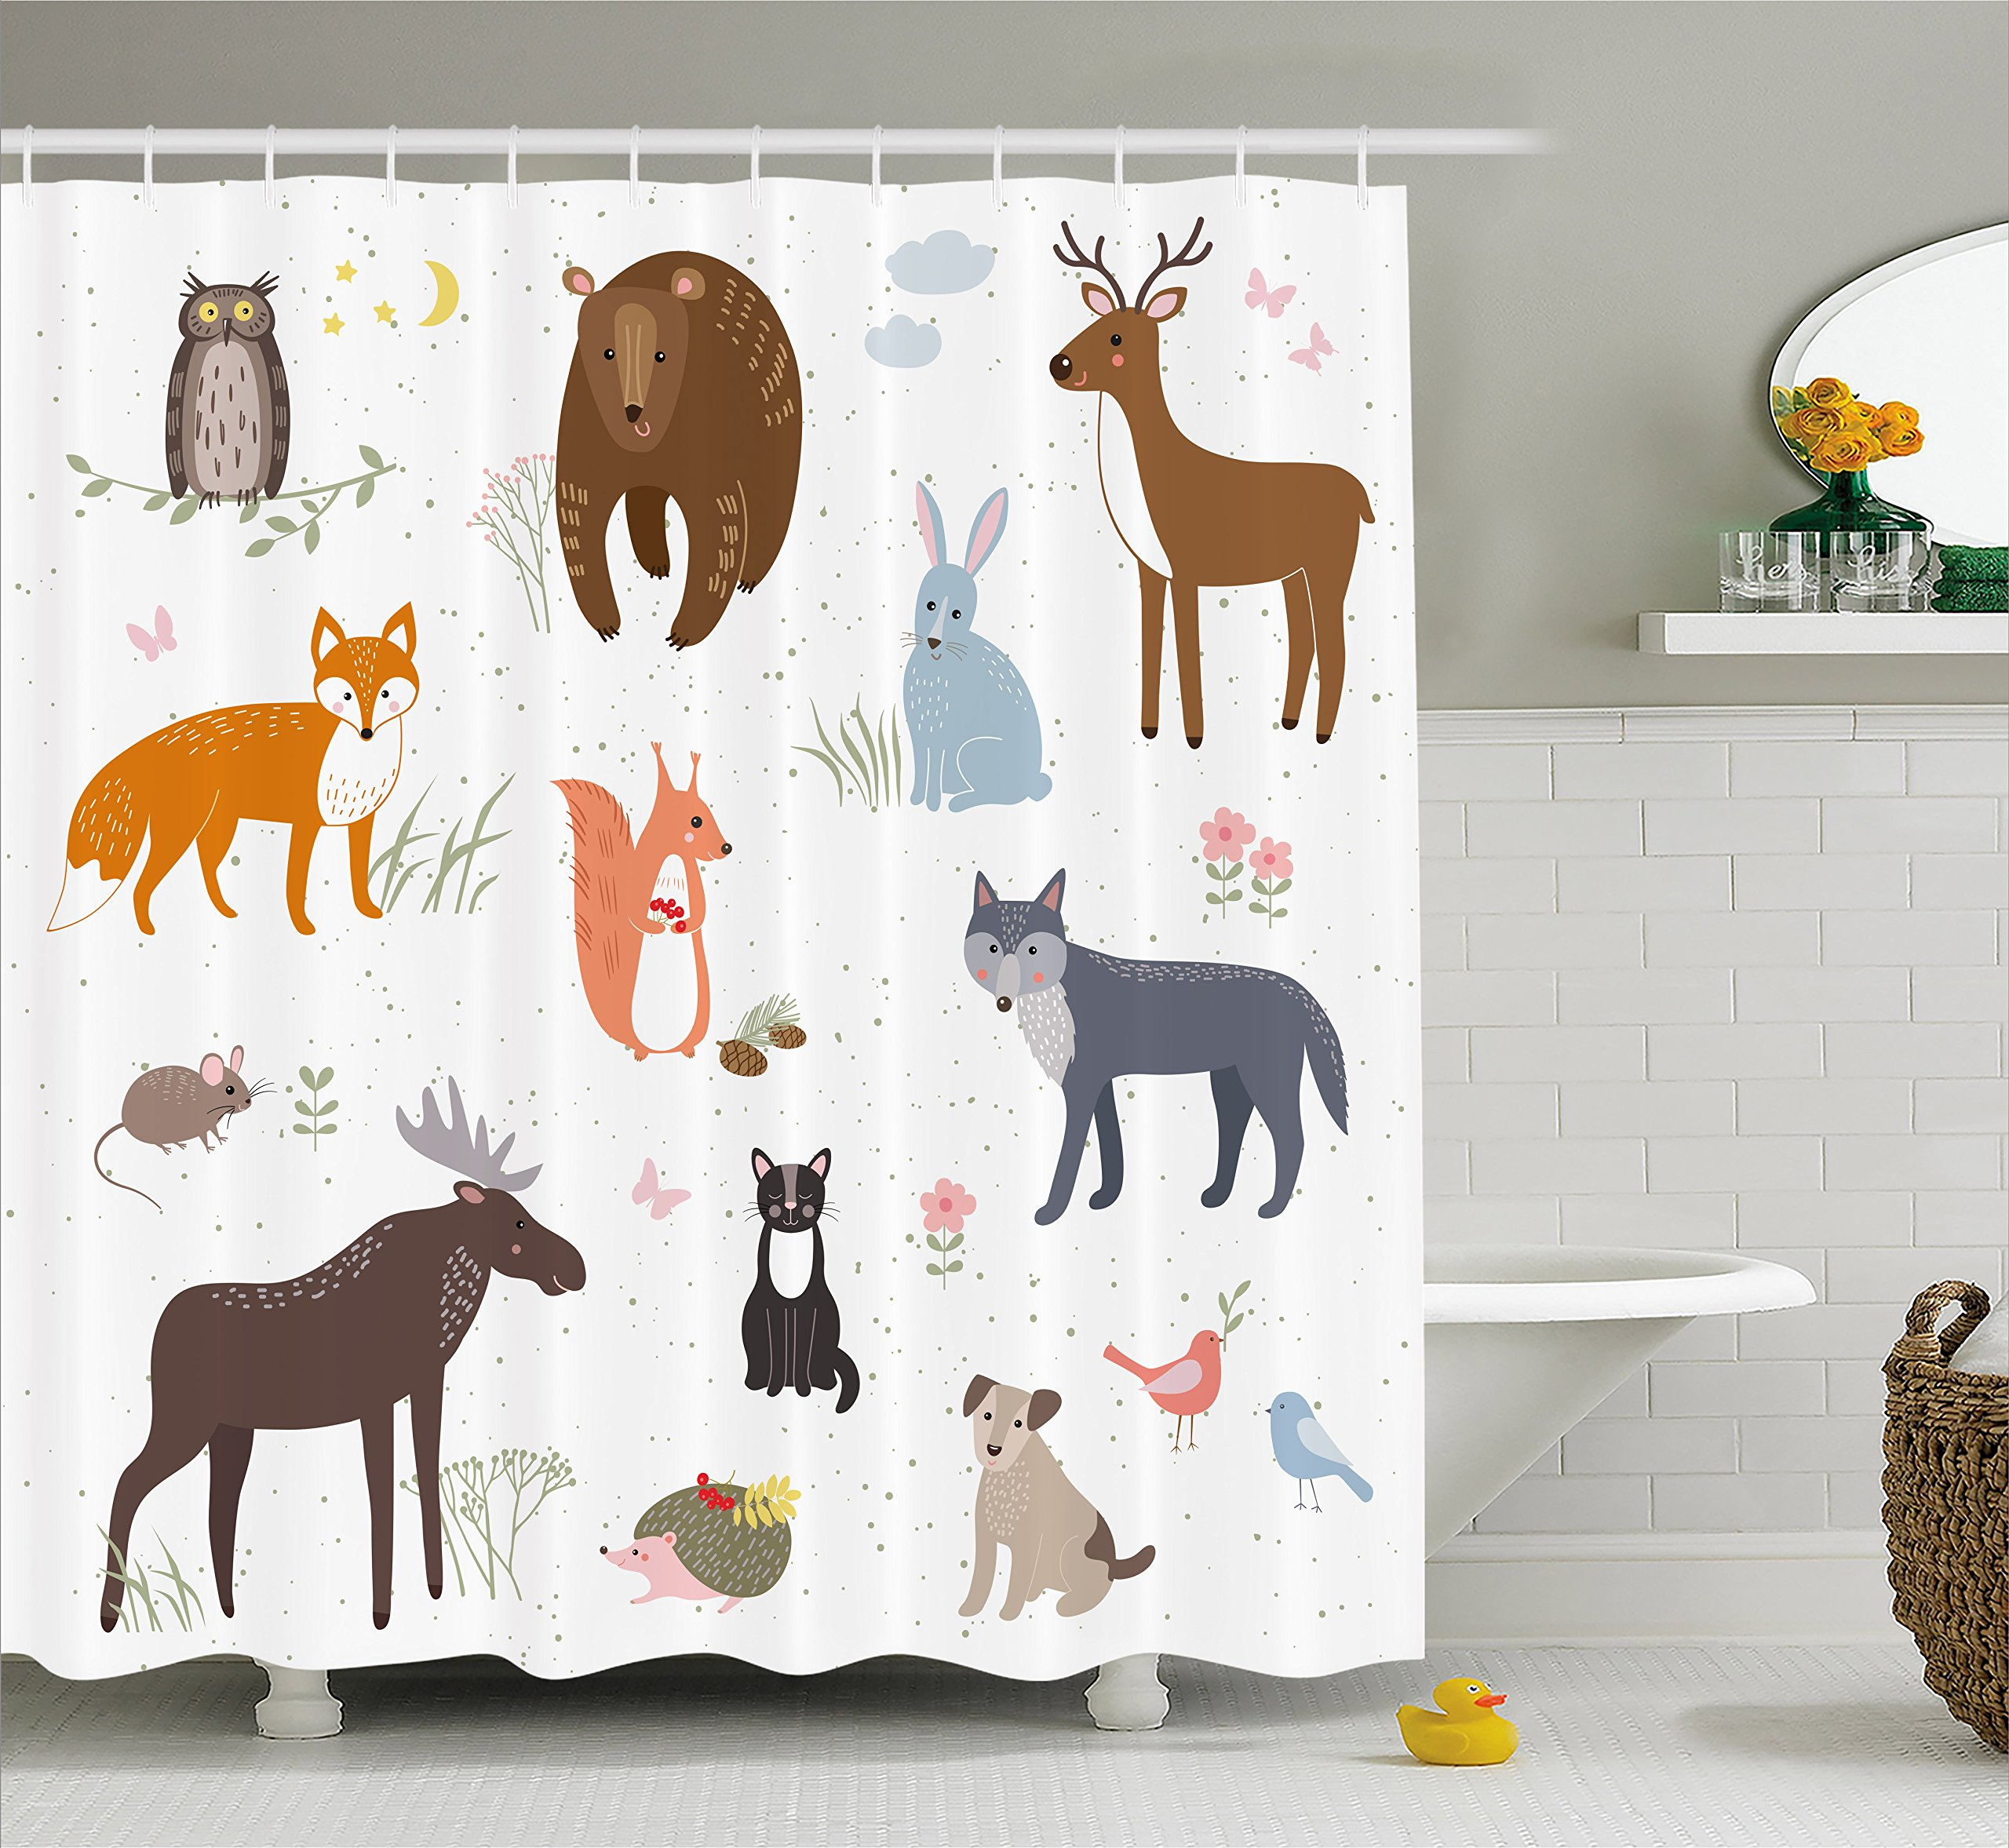 Ambesonne Cabin Decor Shower Curtain by, Cute Animals in Spring Meadow Childish Woodland Fauna Kids Baby Room Nursery, Fabric Bathroom Decor Set with Hooks, 70 Inches, Multicolor by Ambesonne (Image #1)